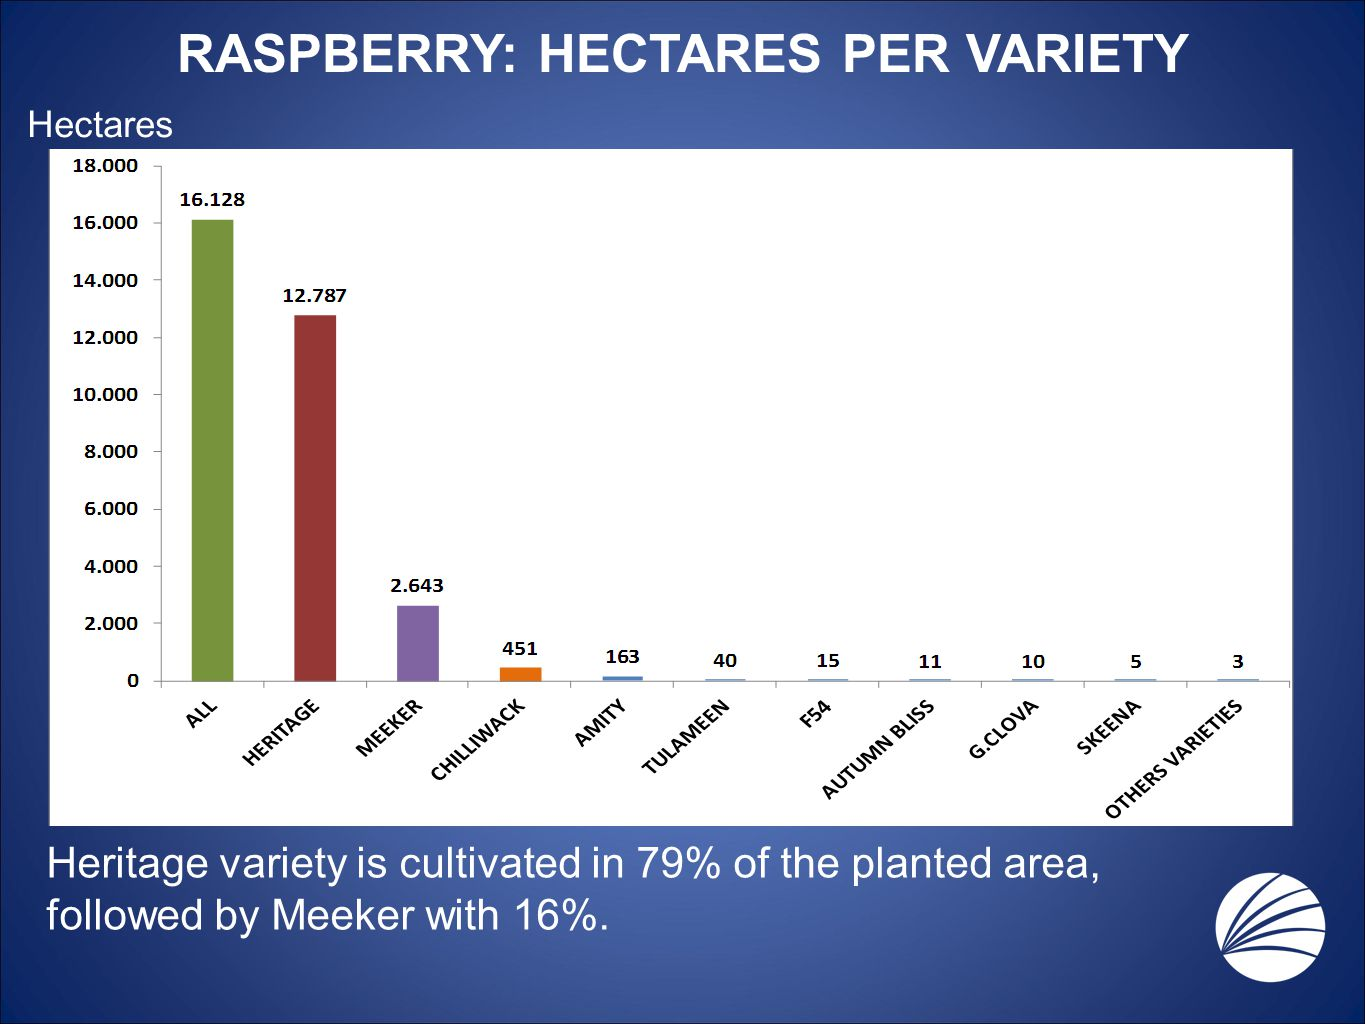 Heritage variety is cultivated in 79% of the planted area, followed by Meeker with 16%. RASPBERRY: HECTARES PER VARIETY Hectares